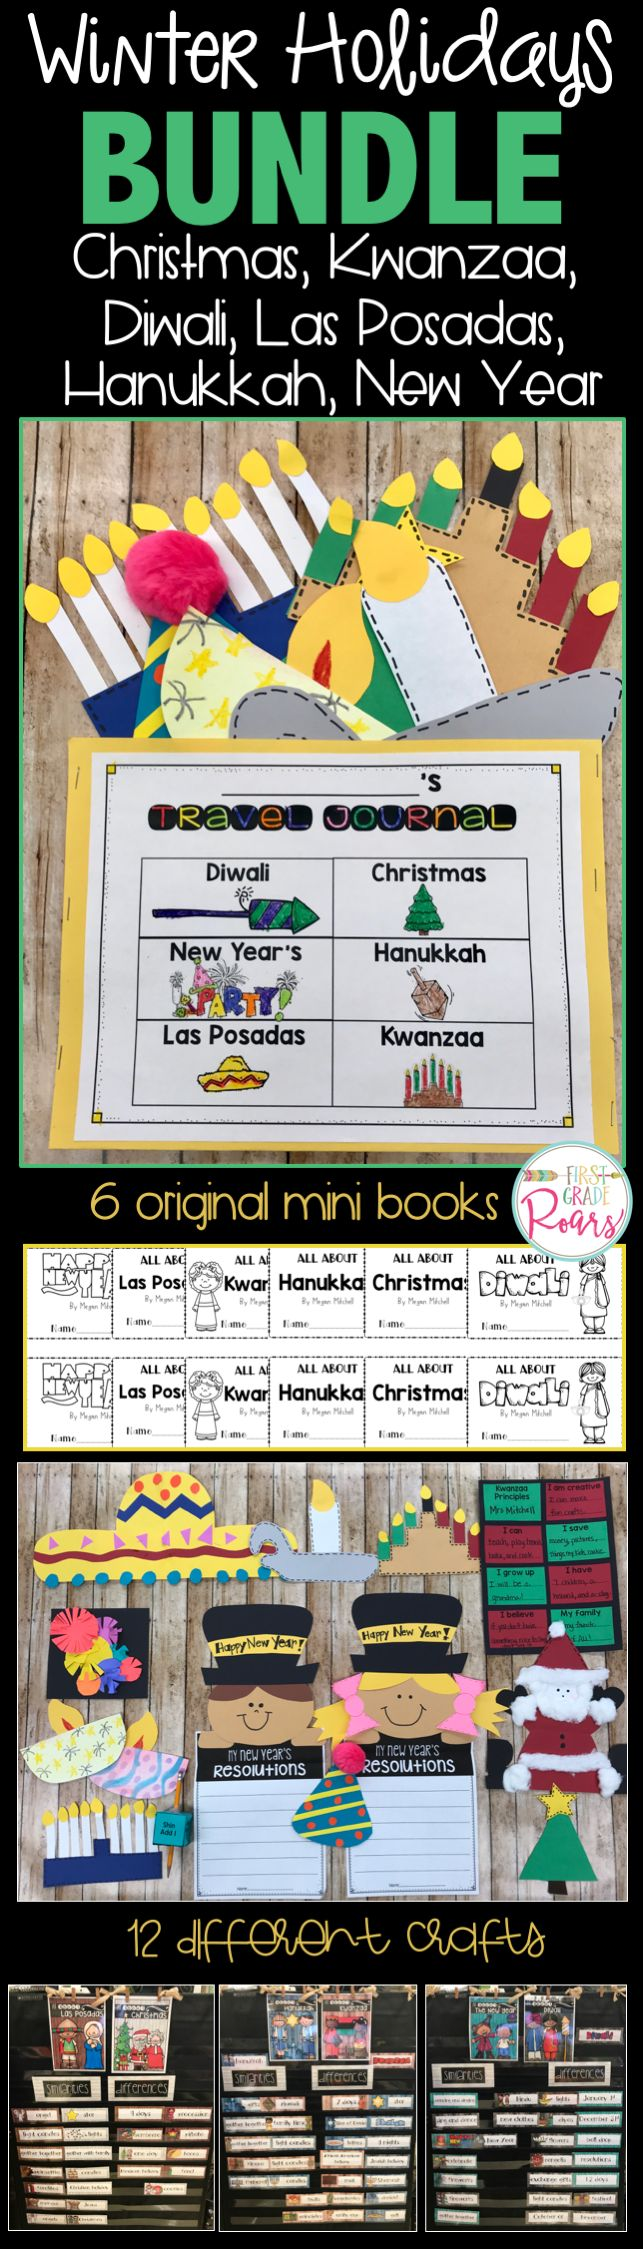 This bundle contains activities for the following holidays: Christmas, Hanukkah, Kwanzaa, Las Posadas, Diwali, & The New Year. It is part of my Guided Reading with a Purpose series and focuses on comparing similarities and differences in holidays. A passport is also included. Mini books for all 6 holiday crafts, reading strategies, word work and crafts. Perfect for kindergarten, first grade, and second grade holiday fun.